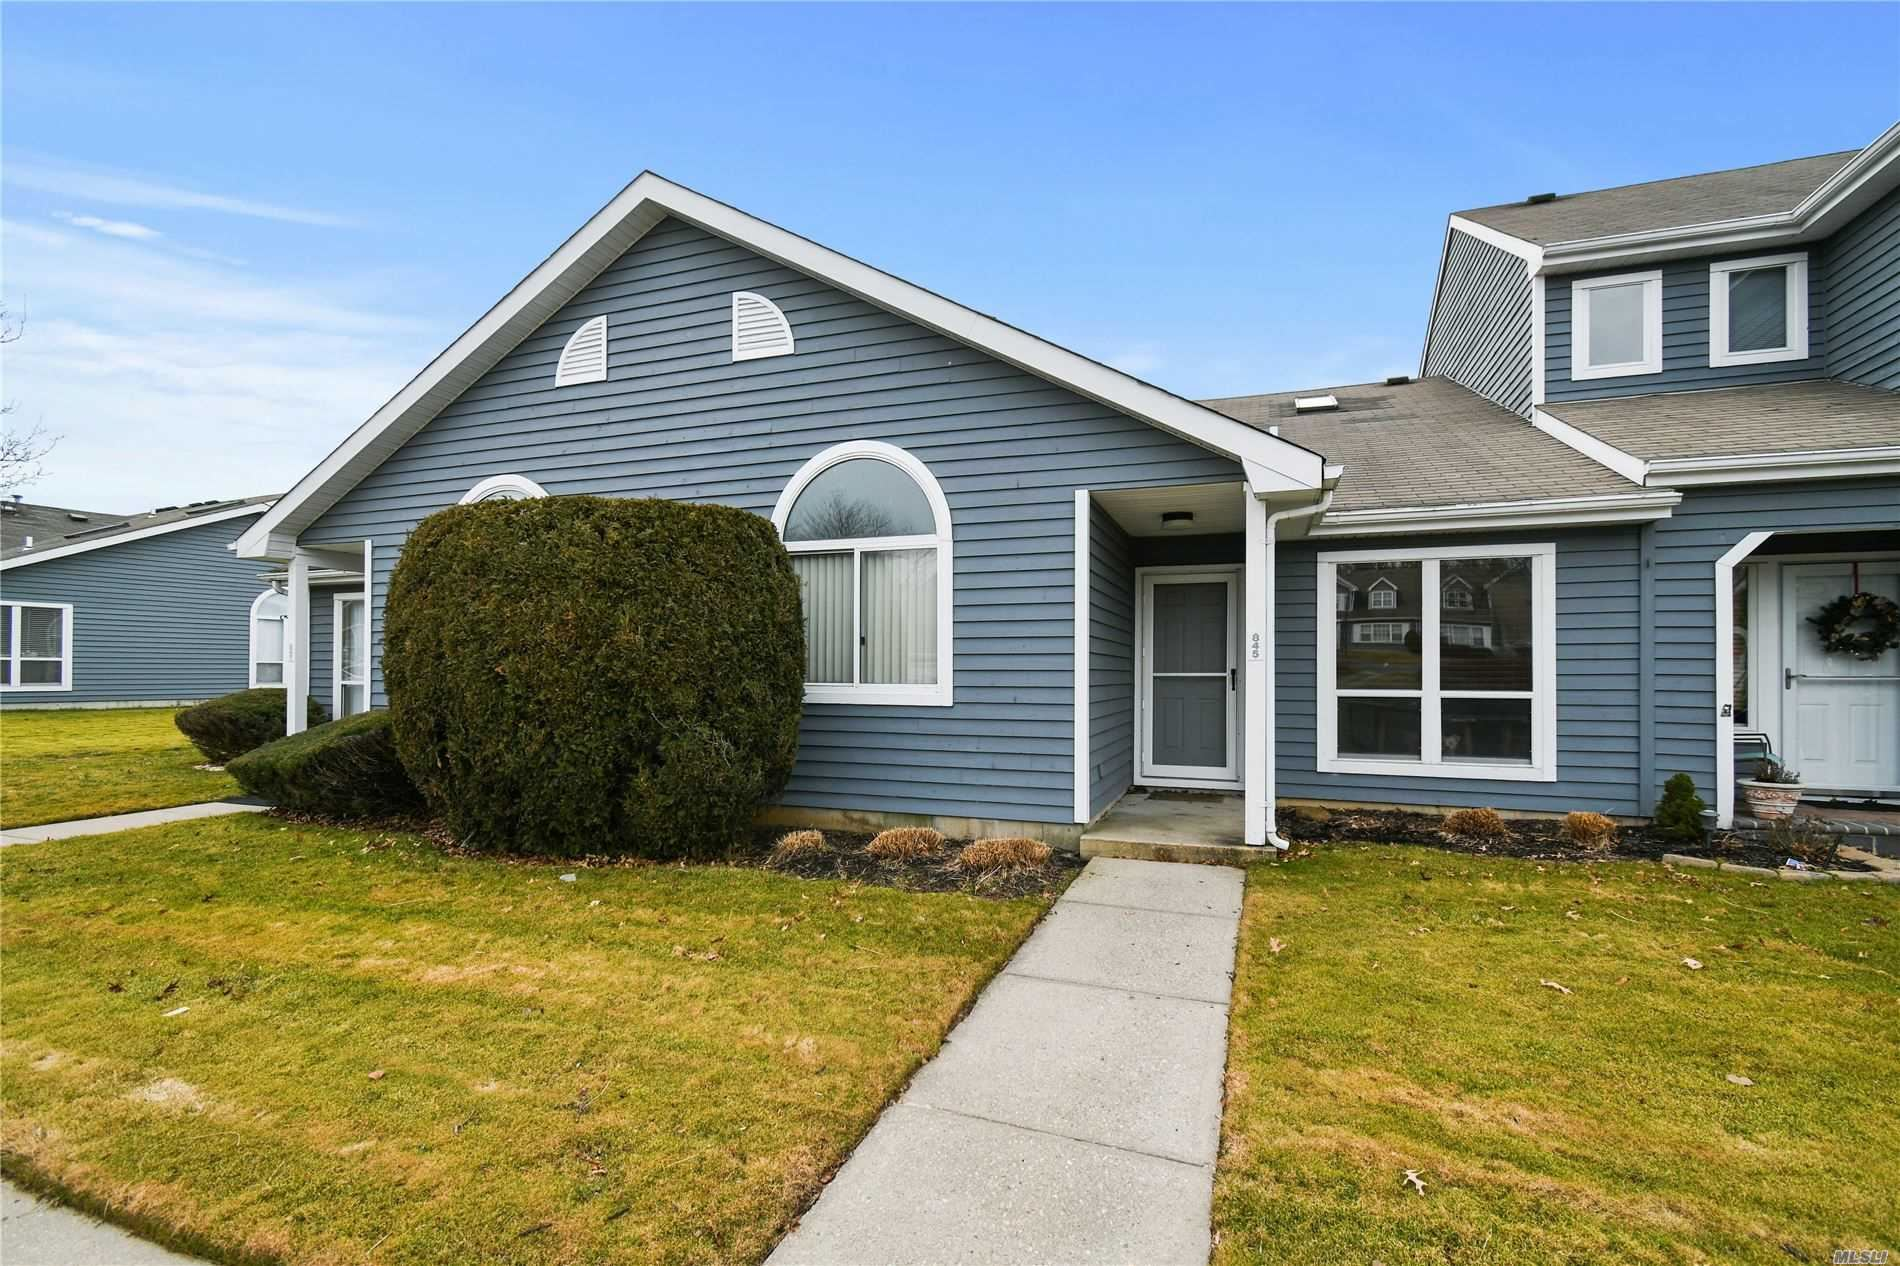 845 Spring Lake Dr, Middle Island, NY 11953 - MLS#: 3198130